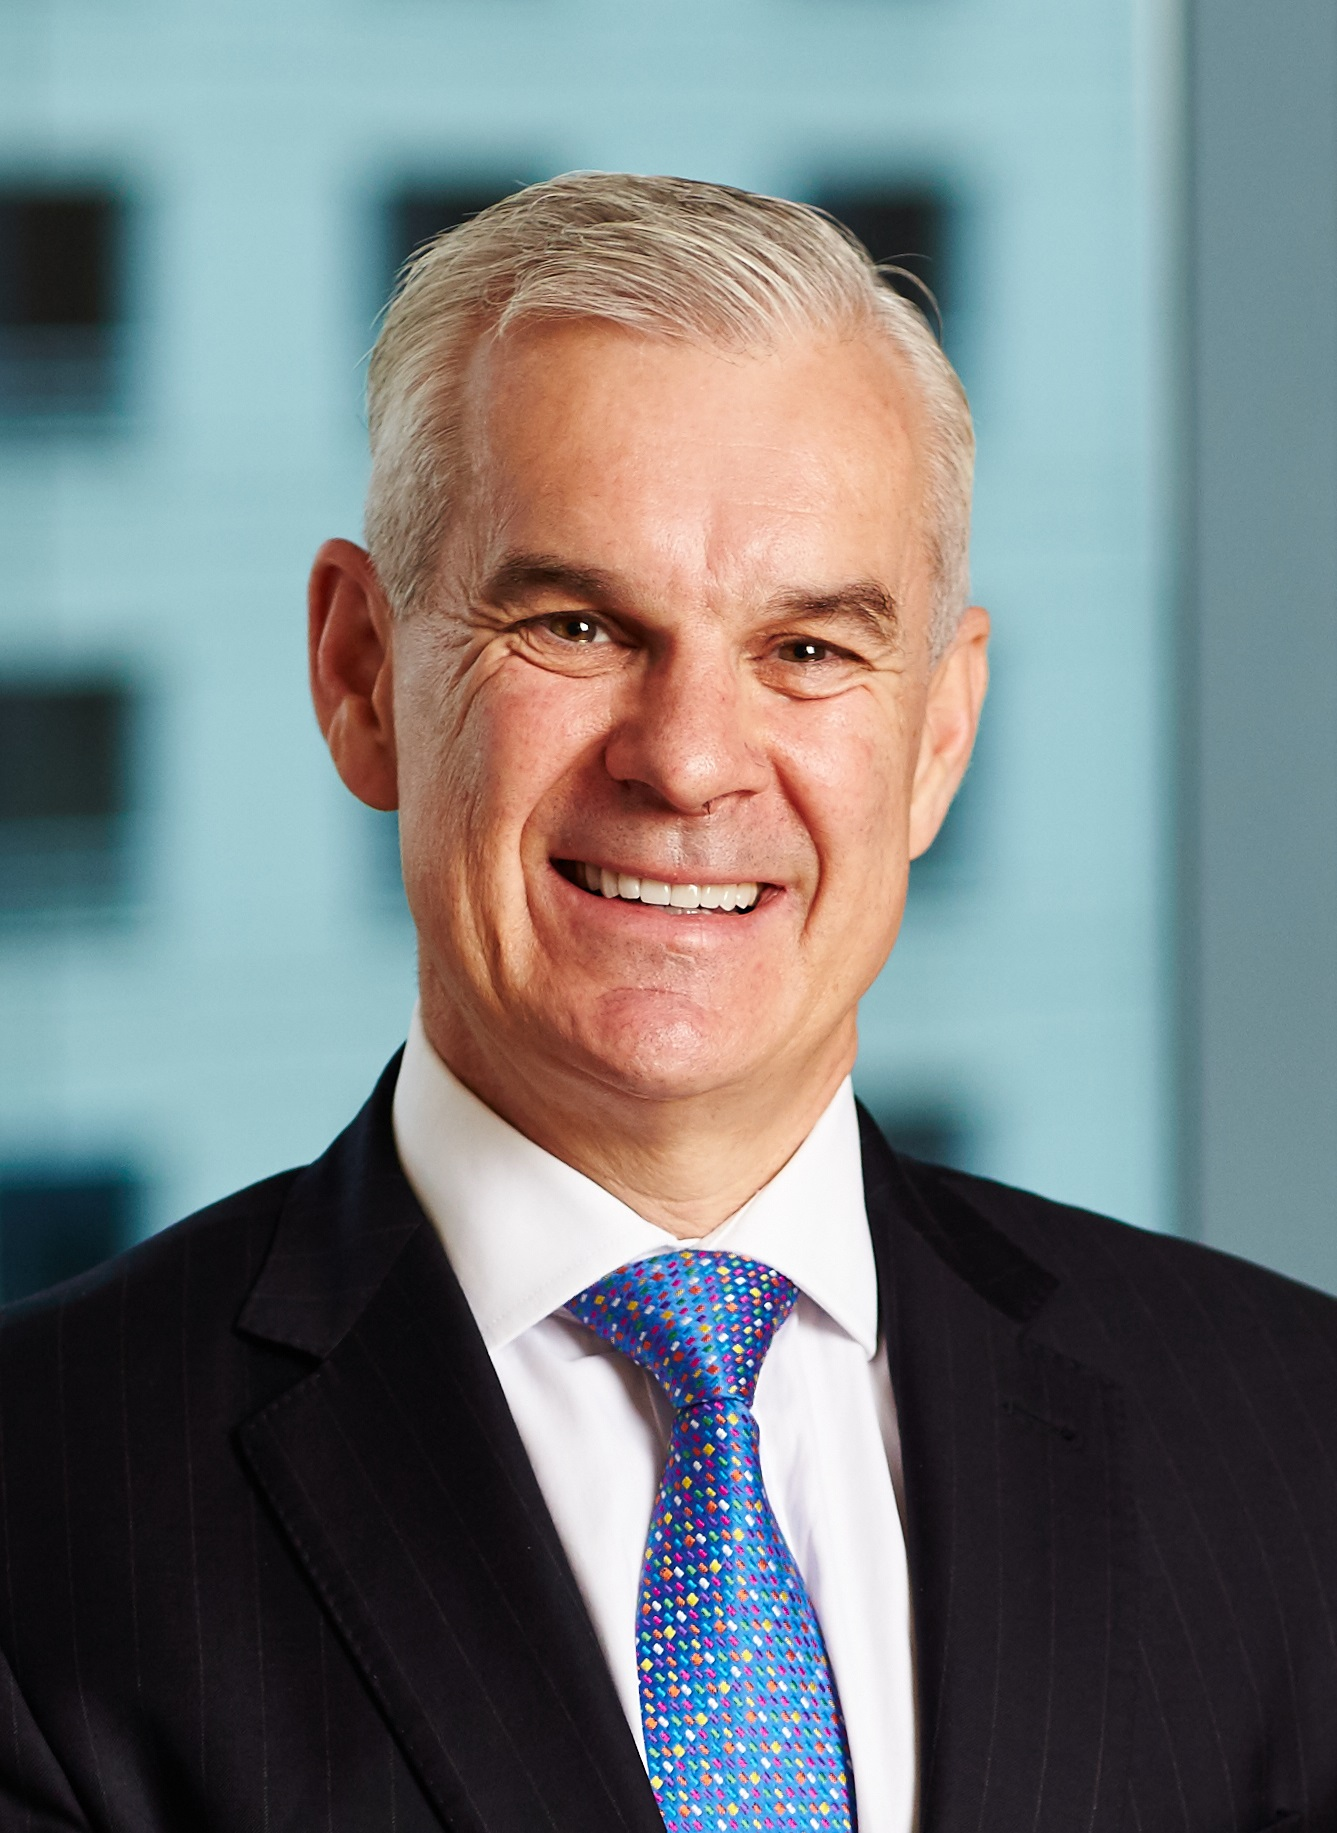 David Hosking, ALLIANZ AUSTRALIA